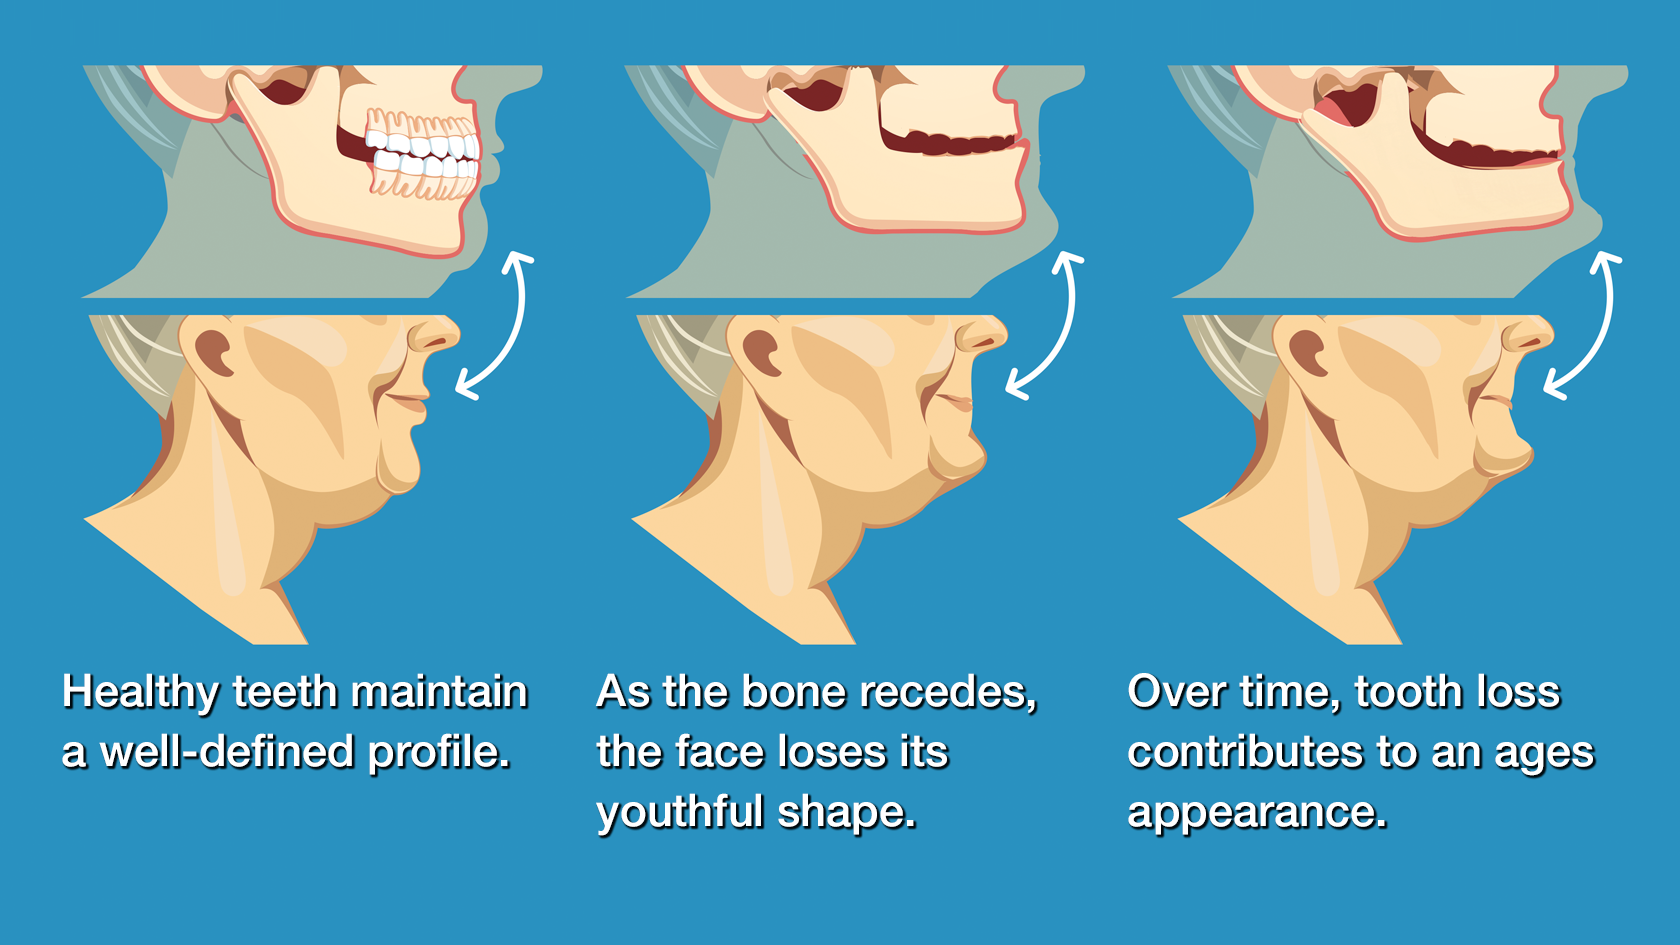 Illustration showing effects of tooth loss